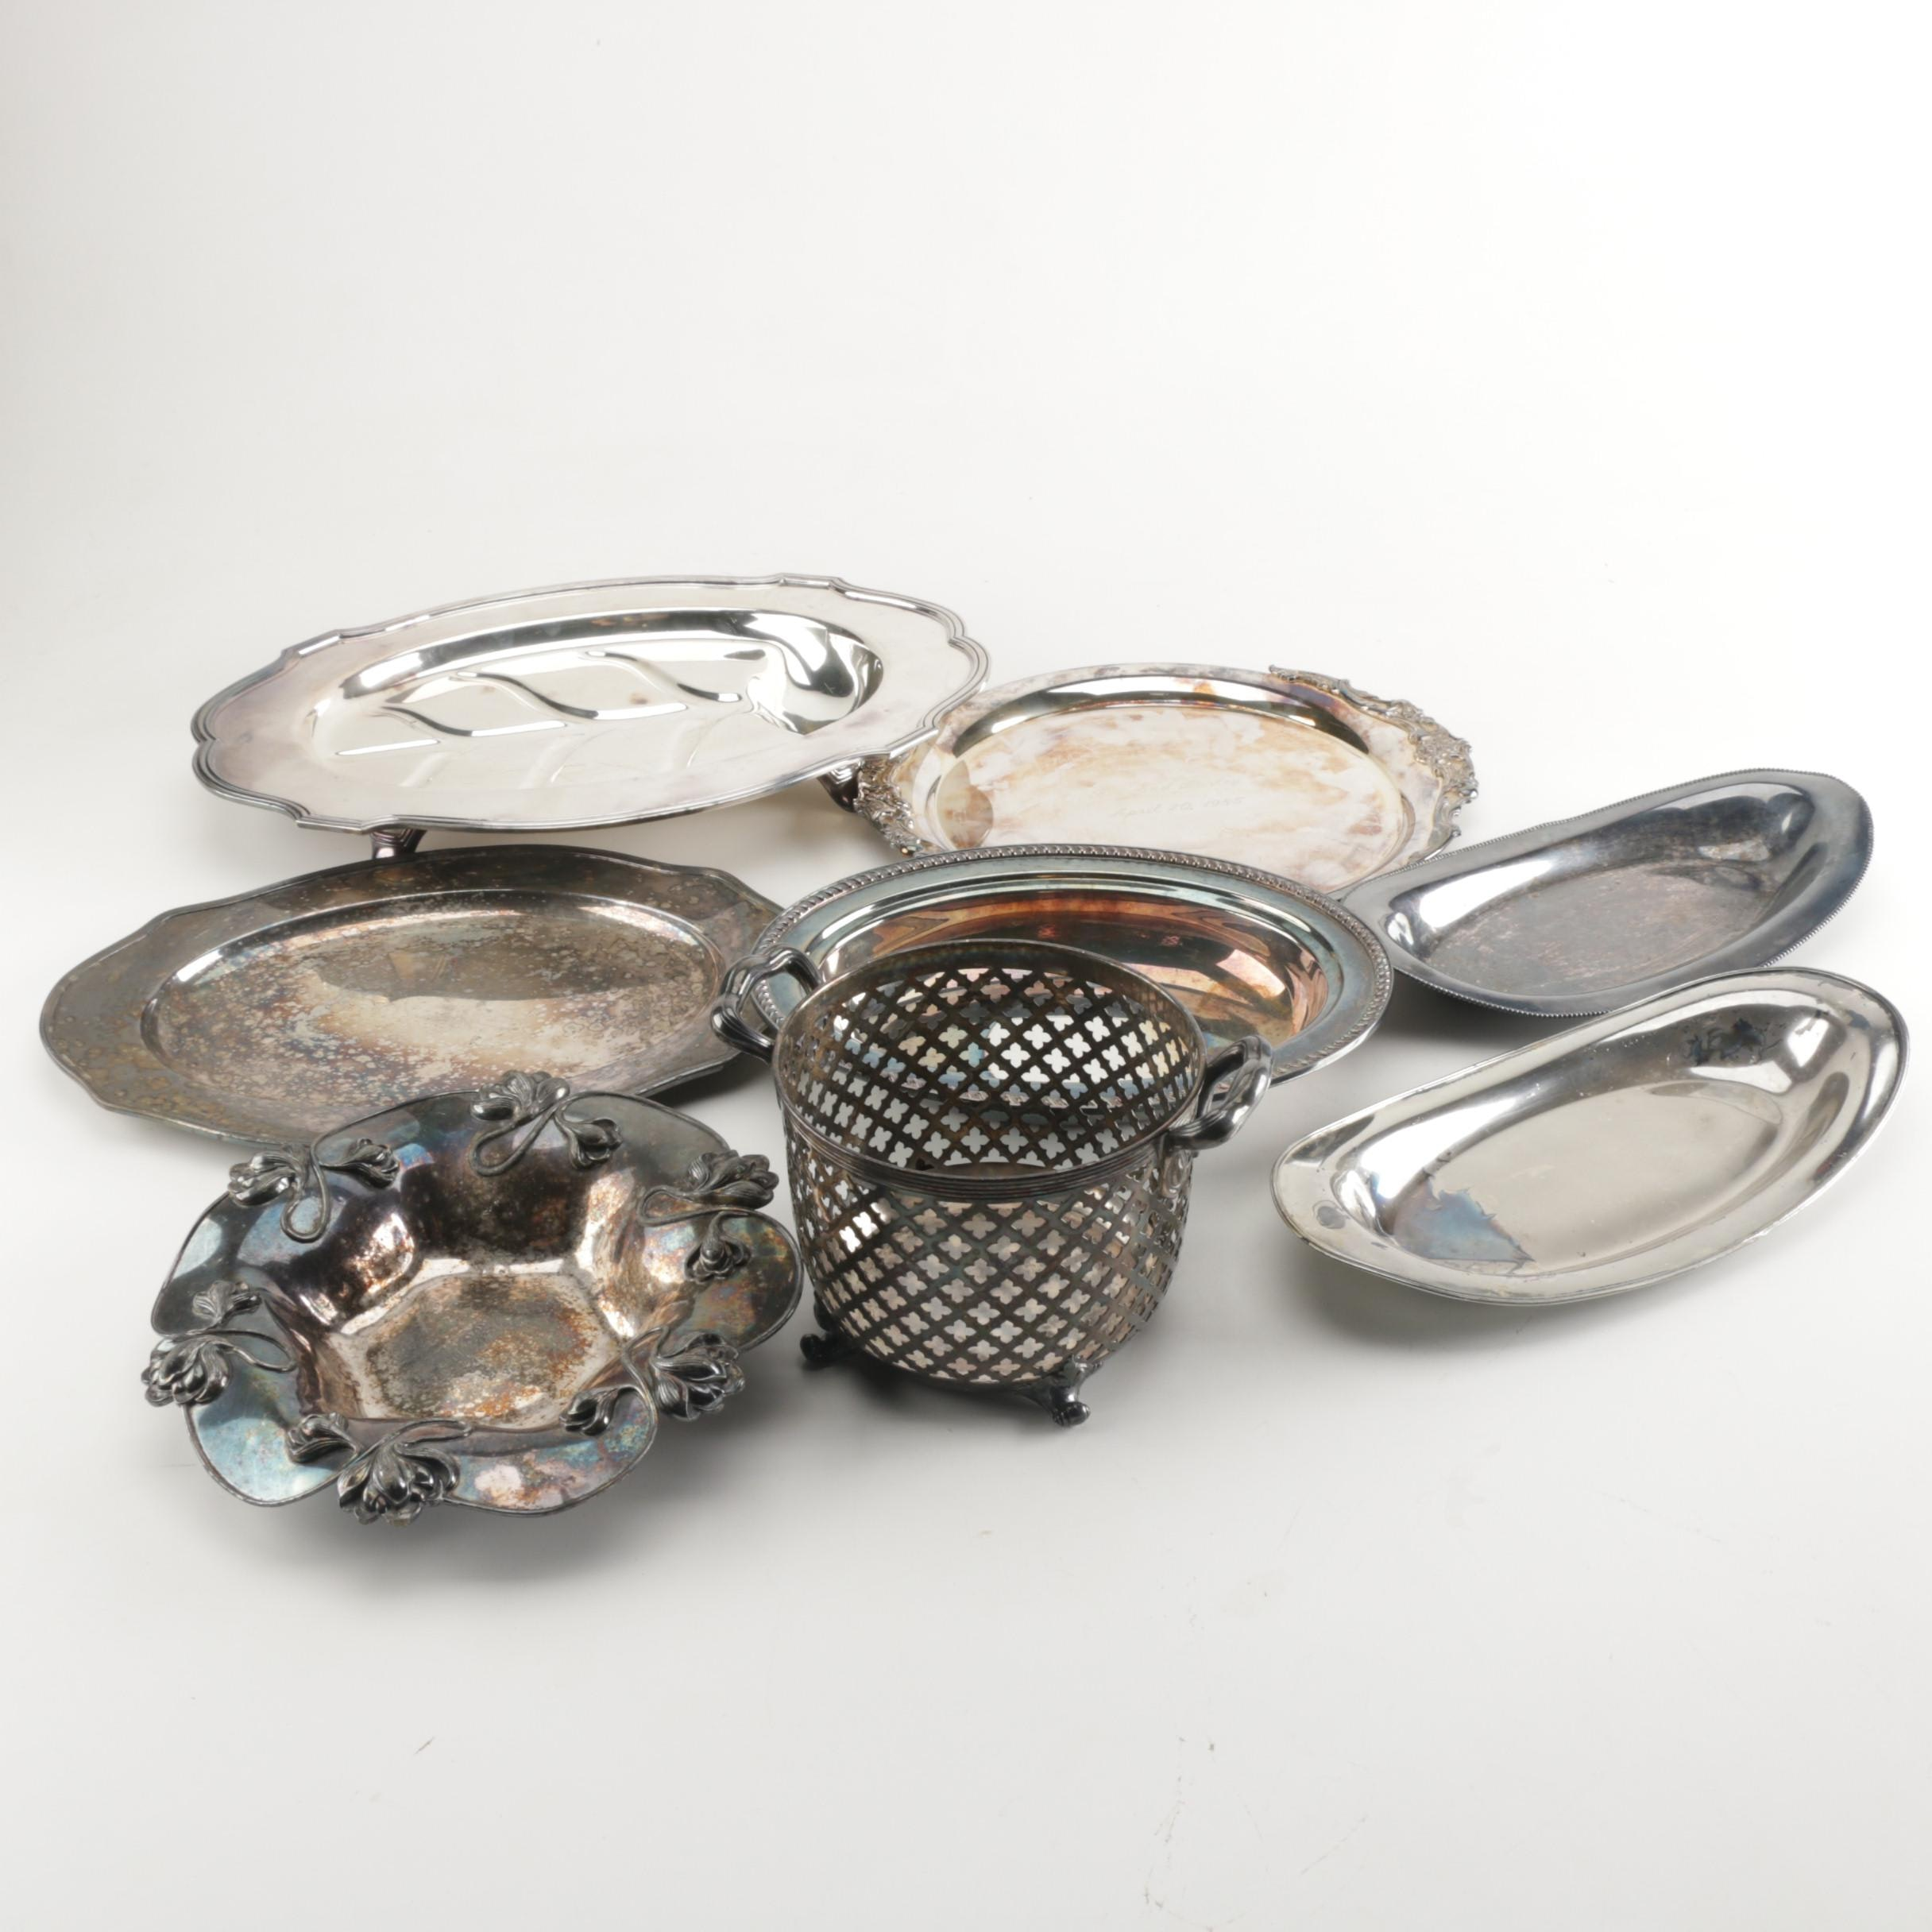 Silver Plate Serving and Breads Trays with Other Silver Plate Dishes